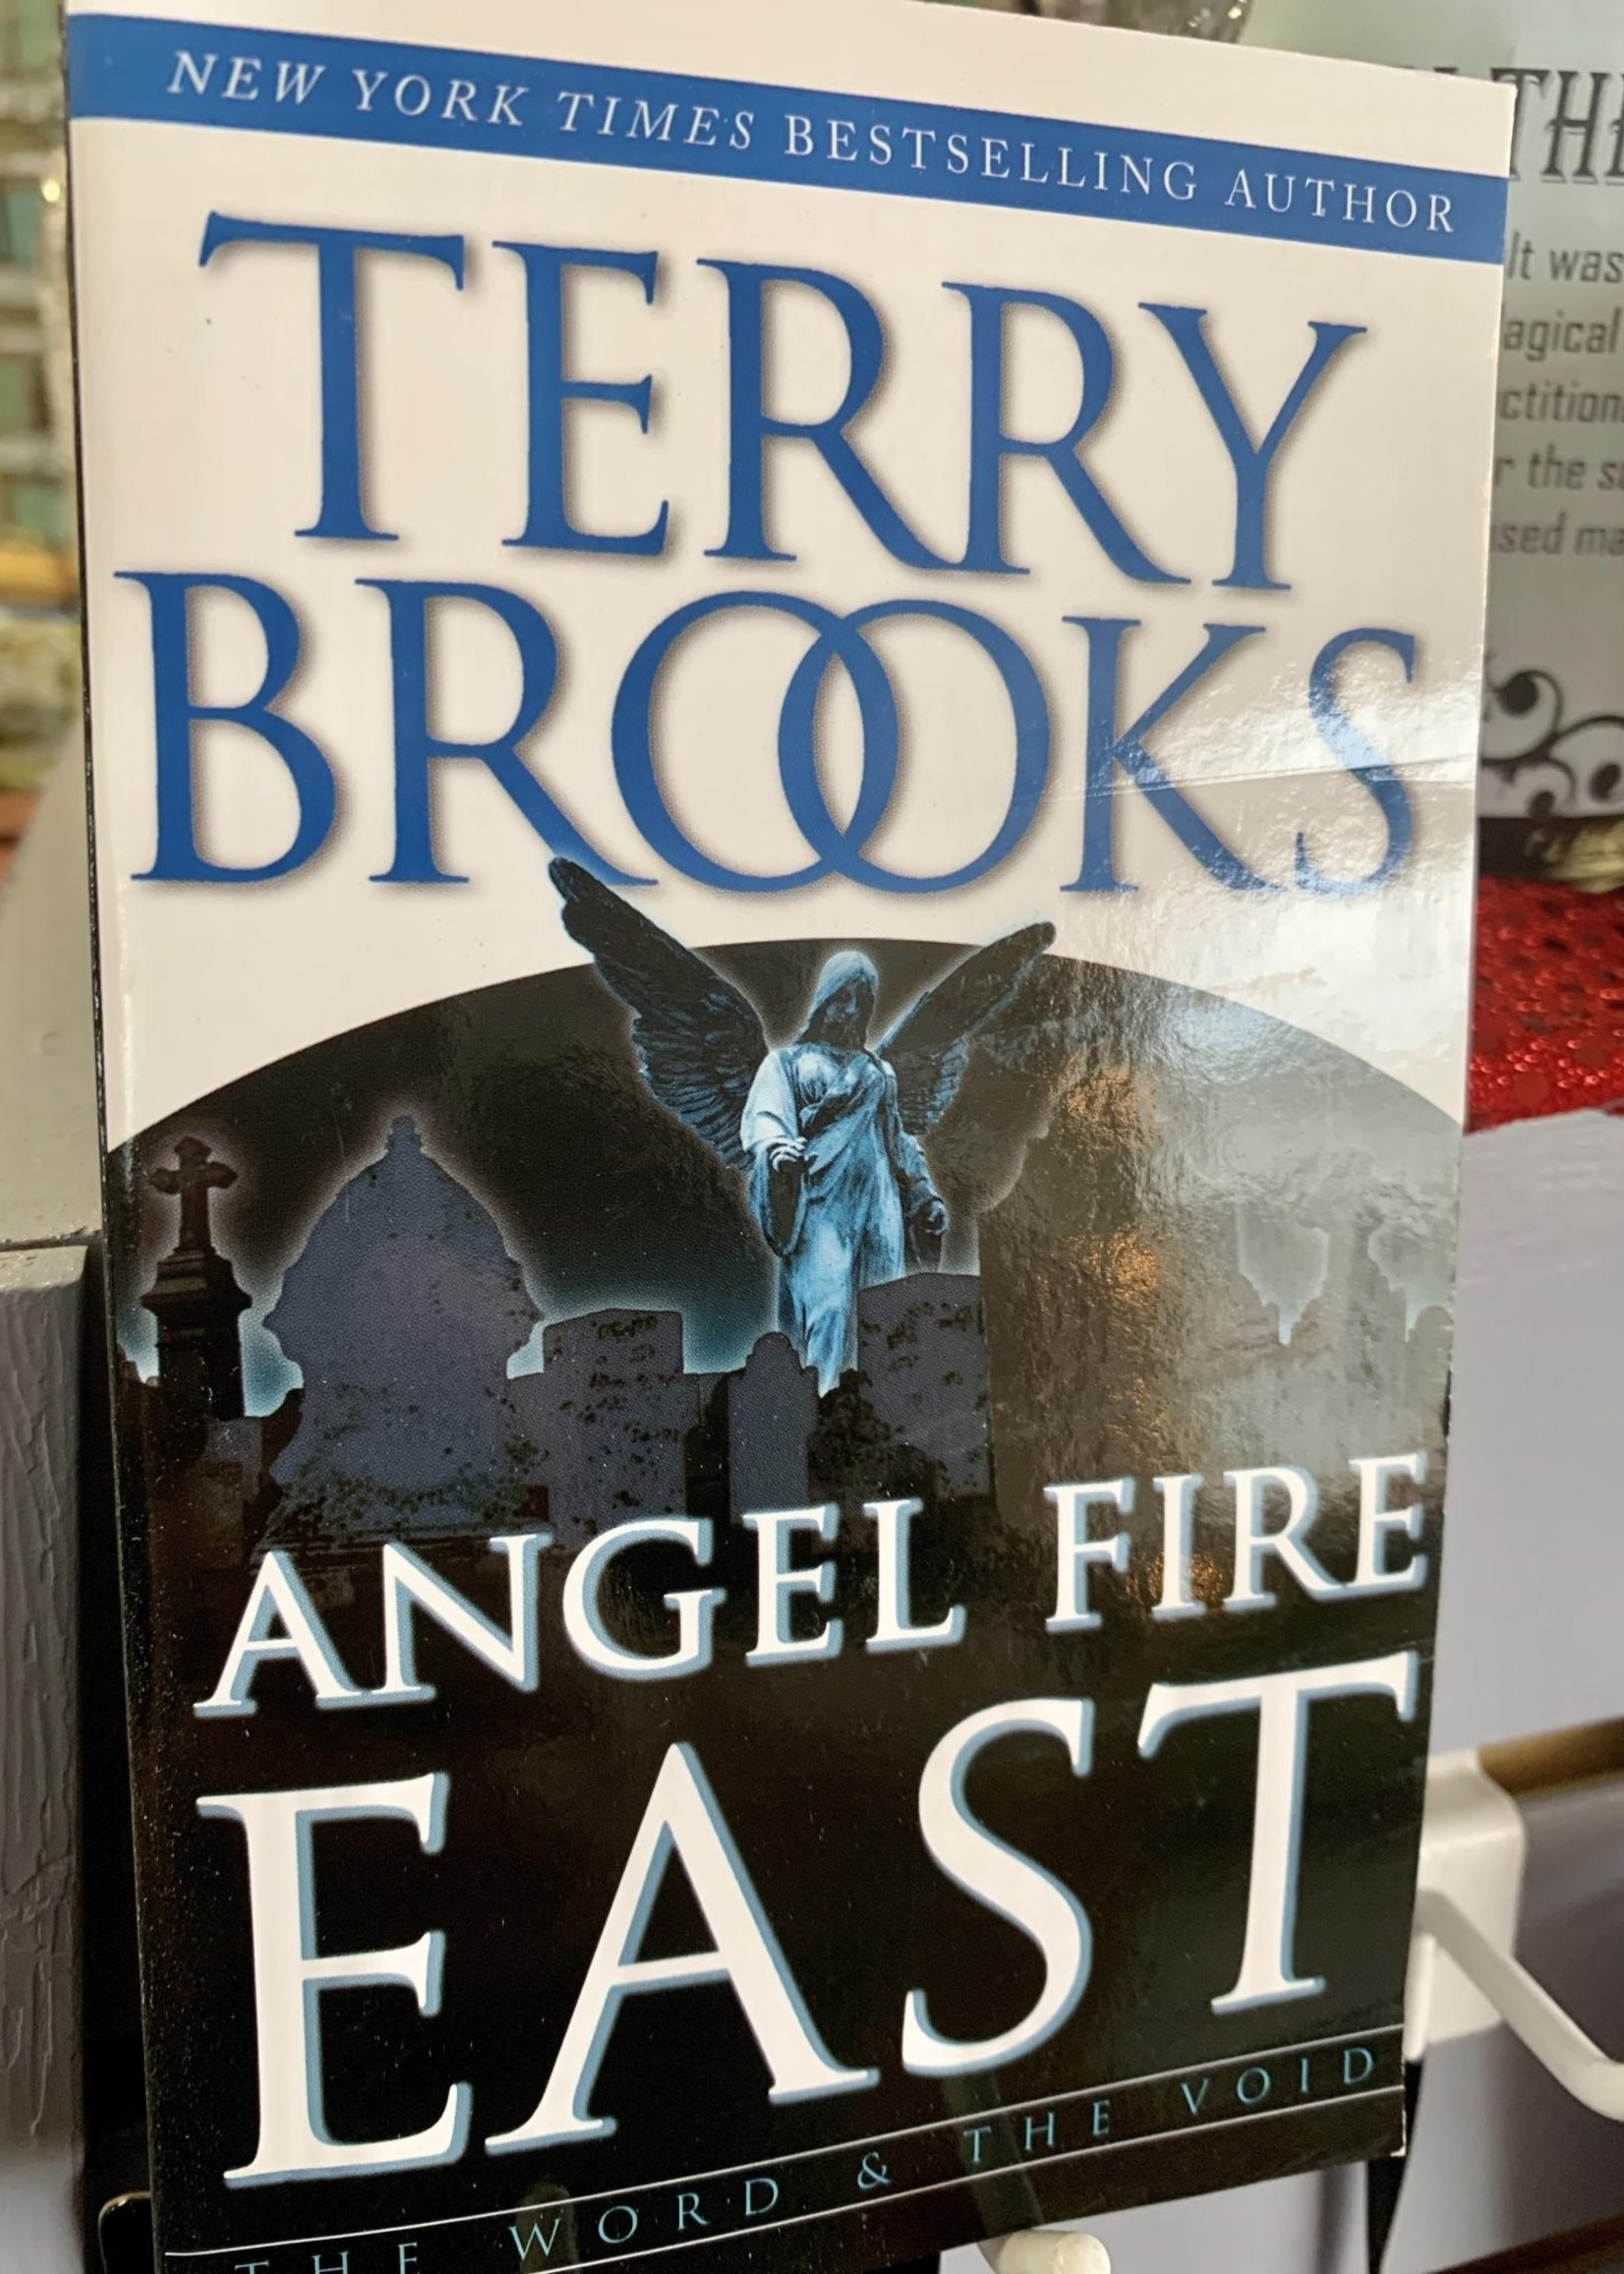 Angel Fire East - By TERRY BROOKS